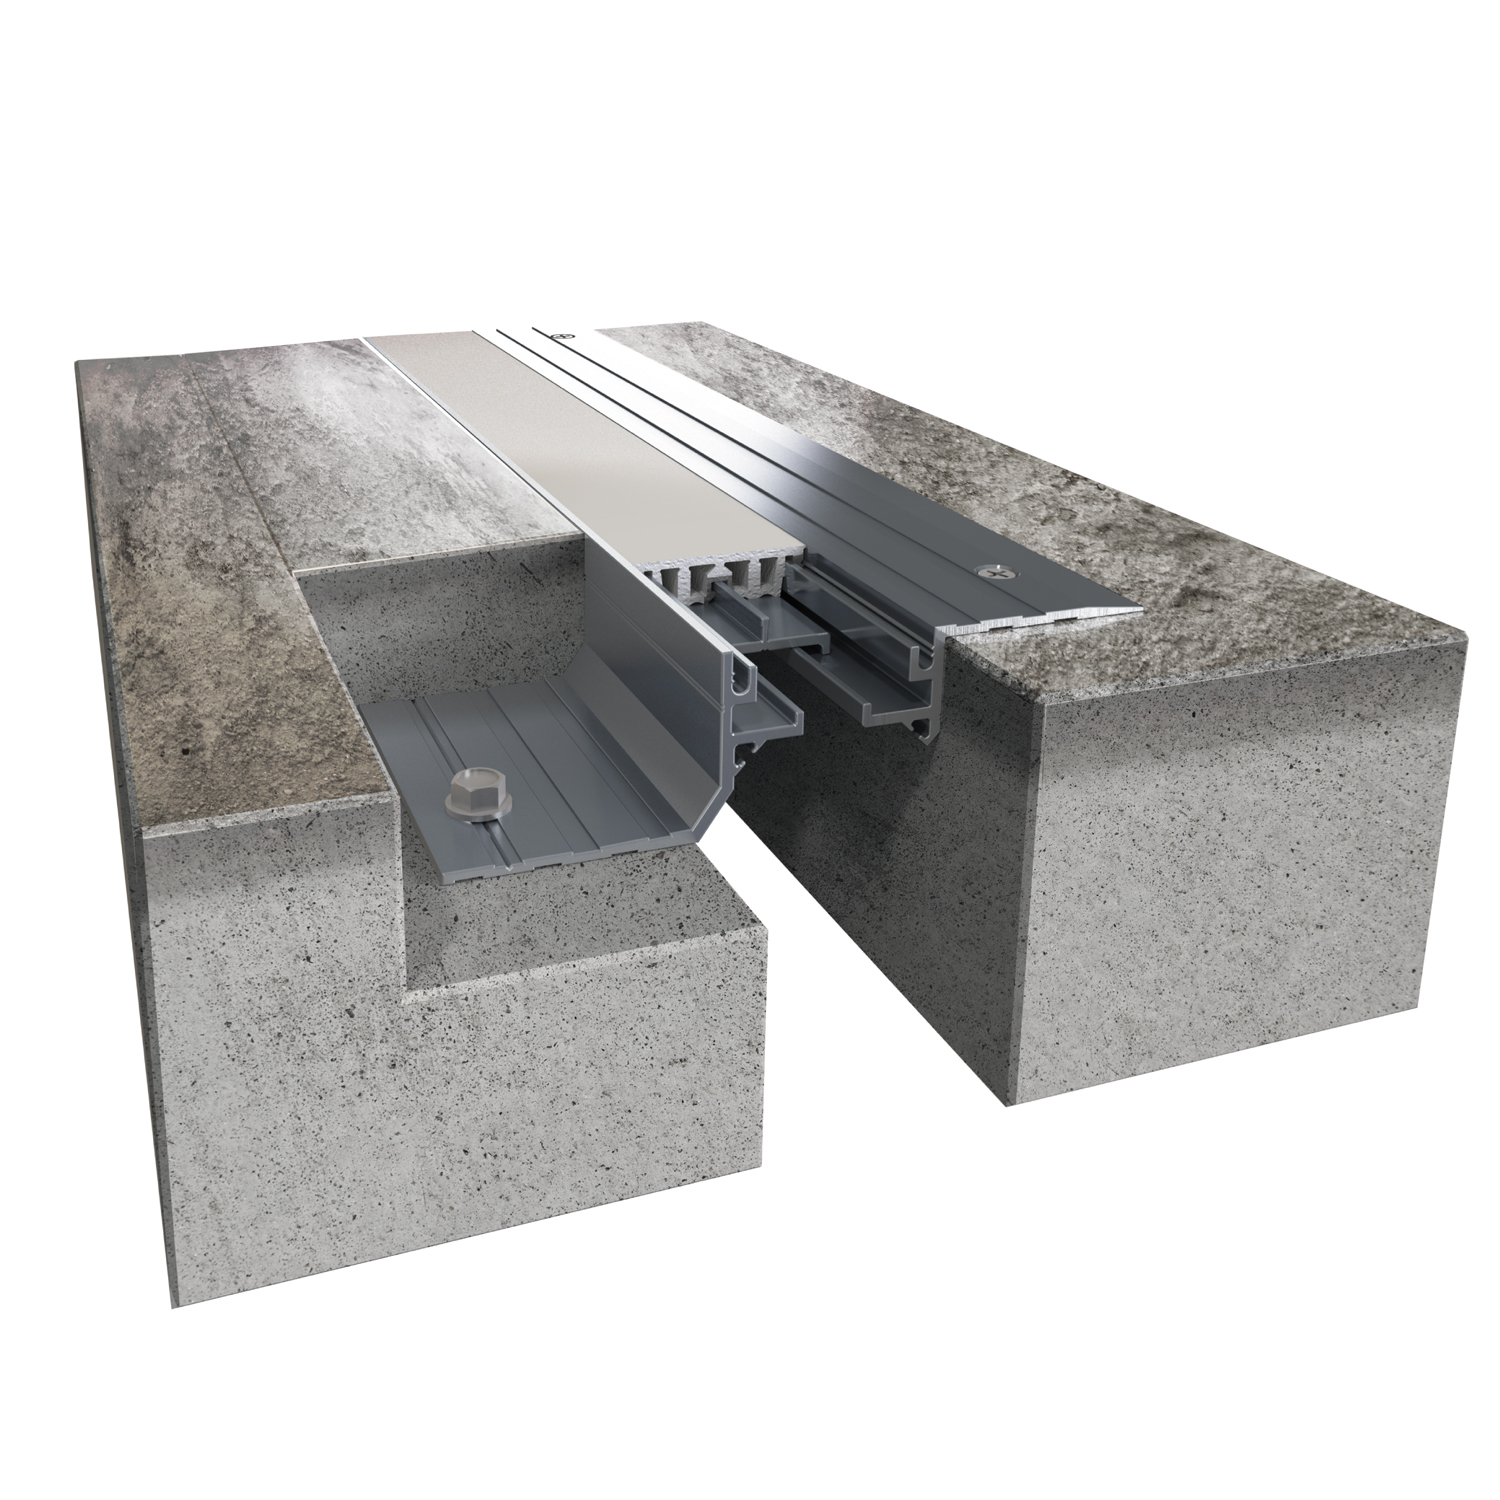 107 Series Floor System Expansion Joints